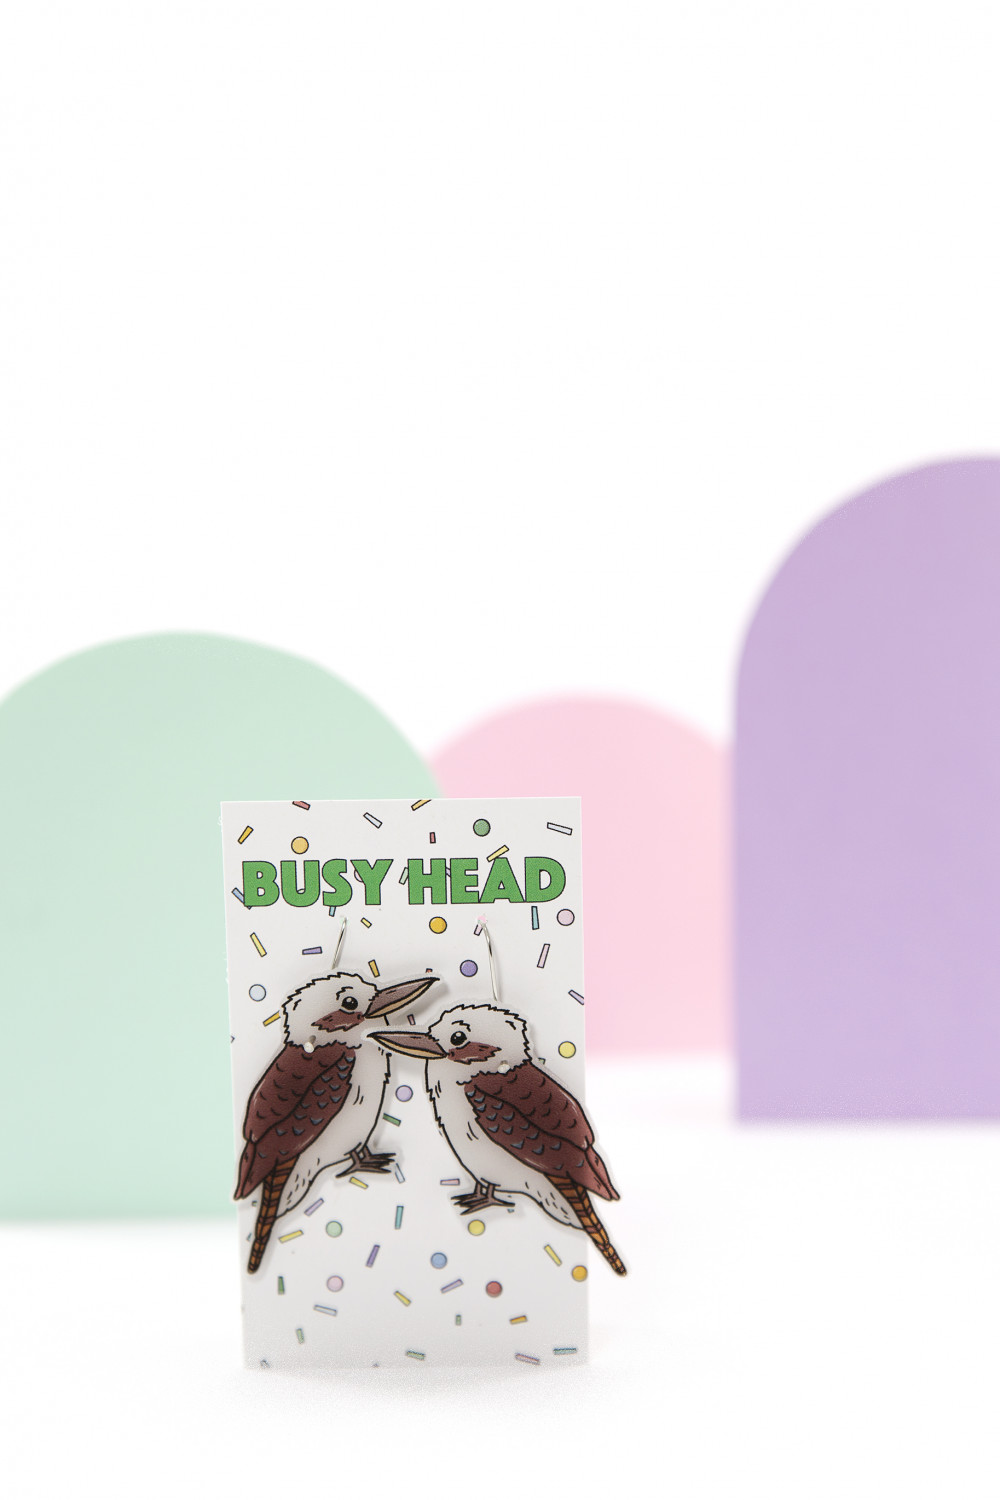 Busy Head Image